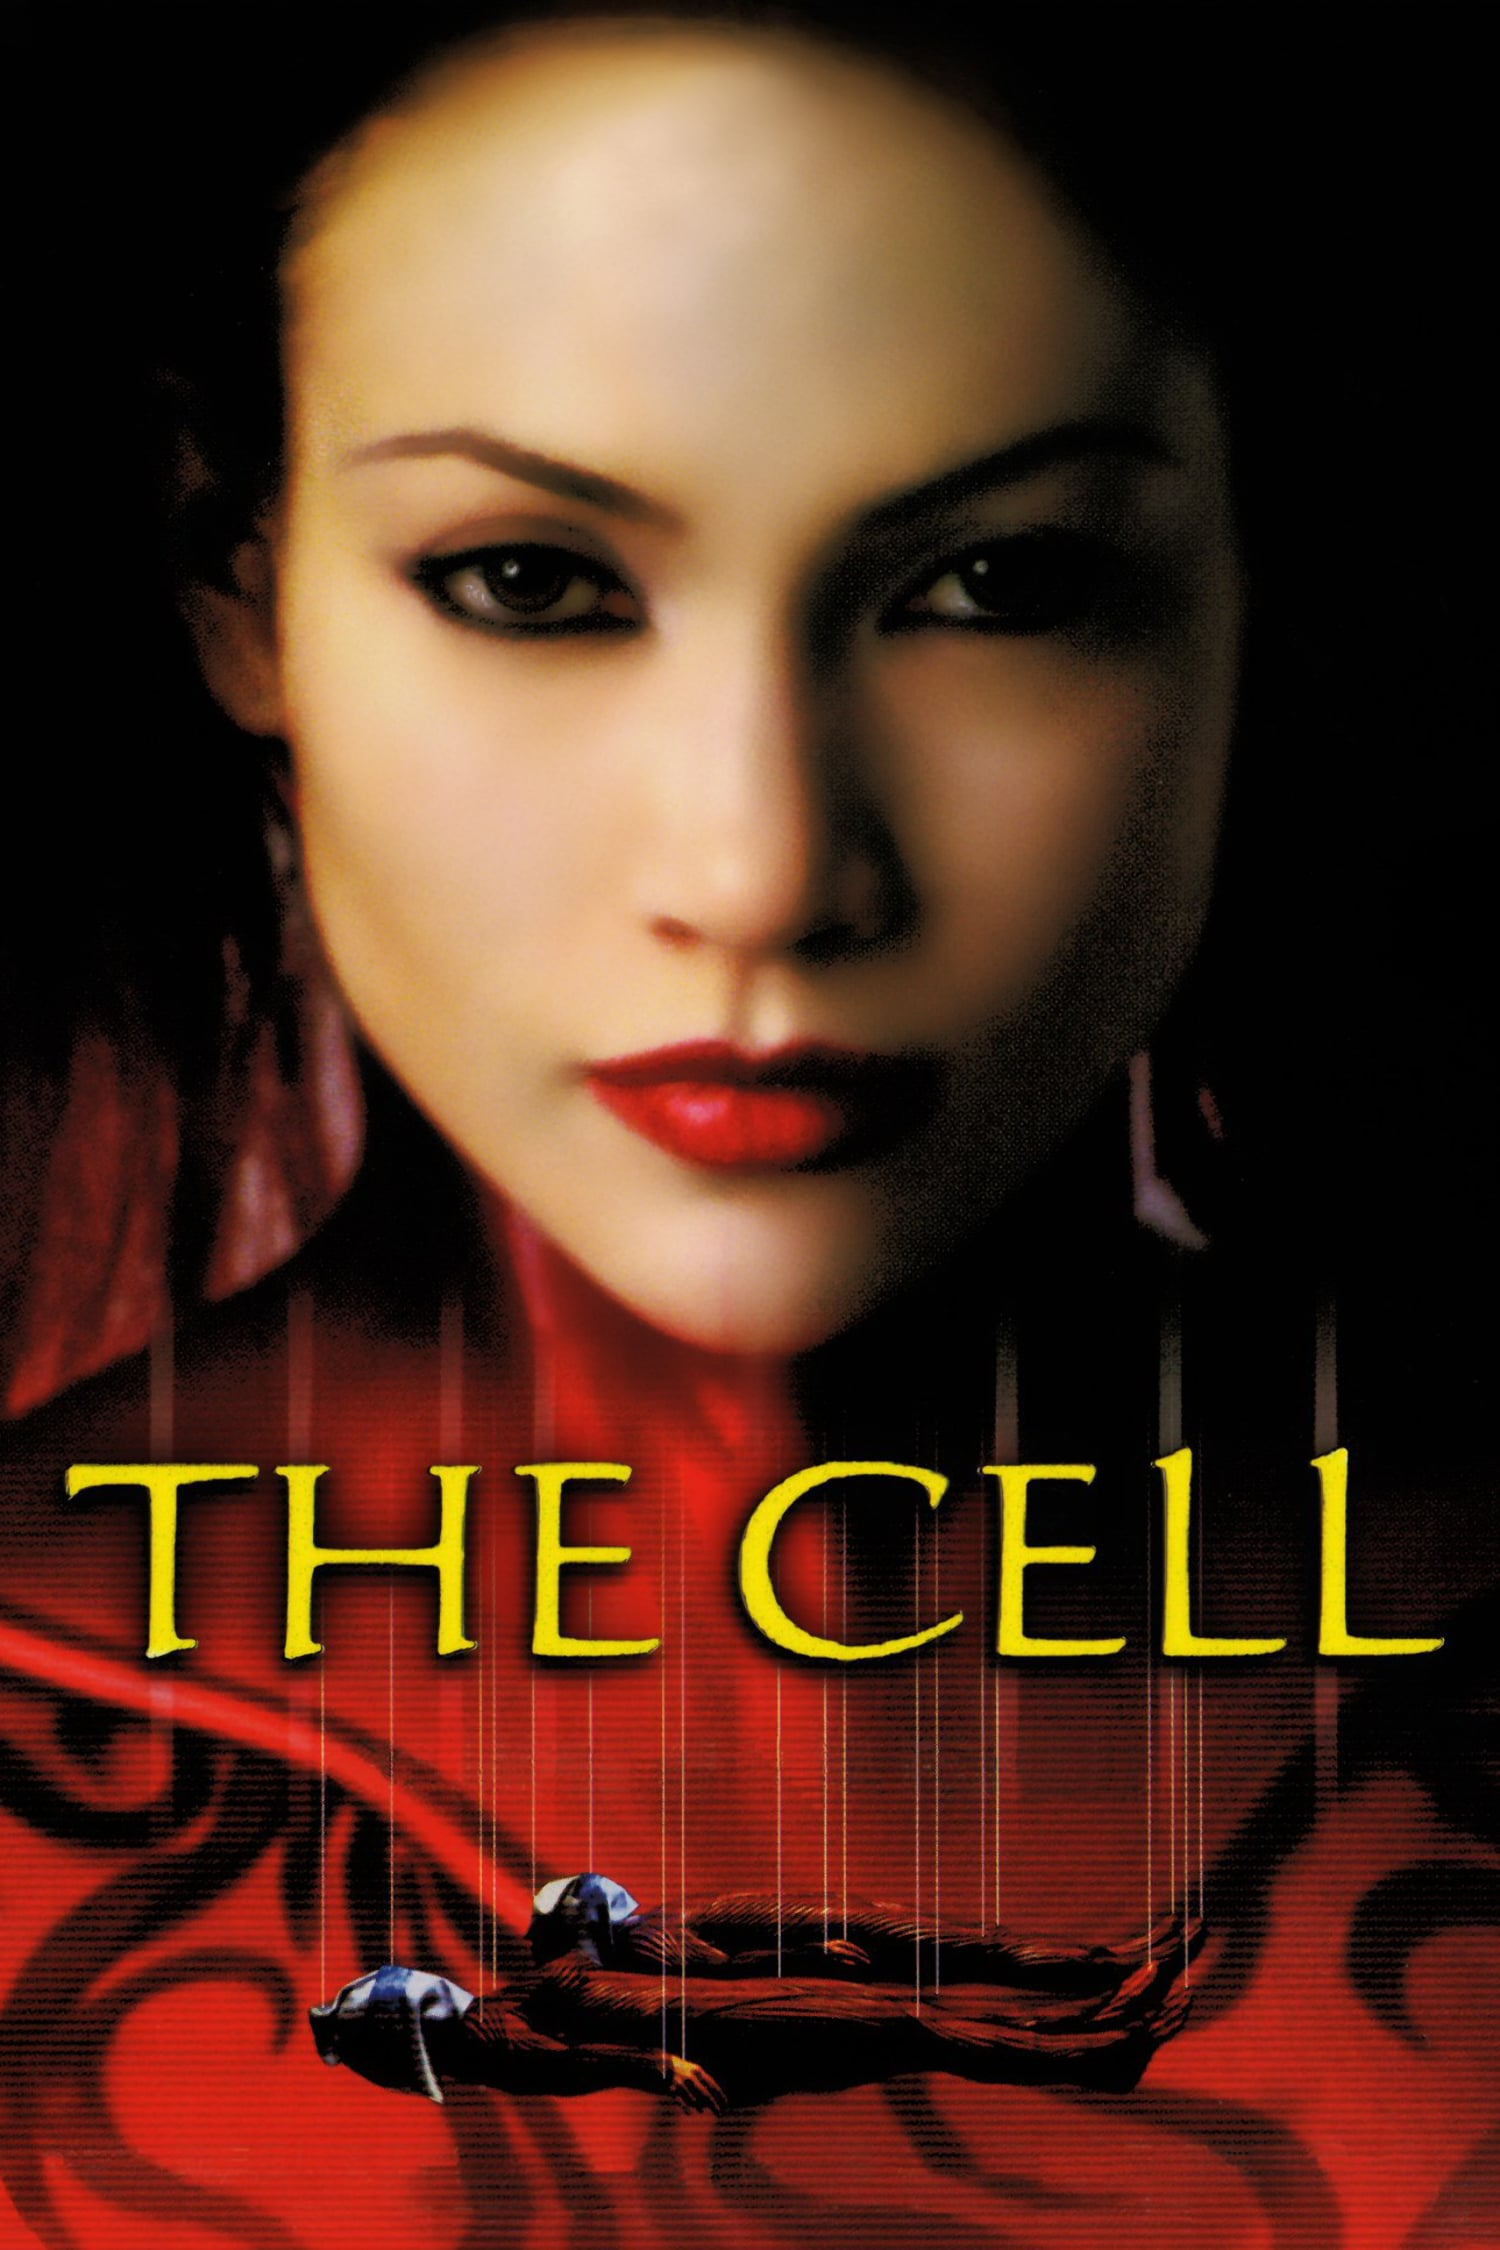 The Cell (2000) - Retrospective